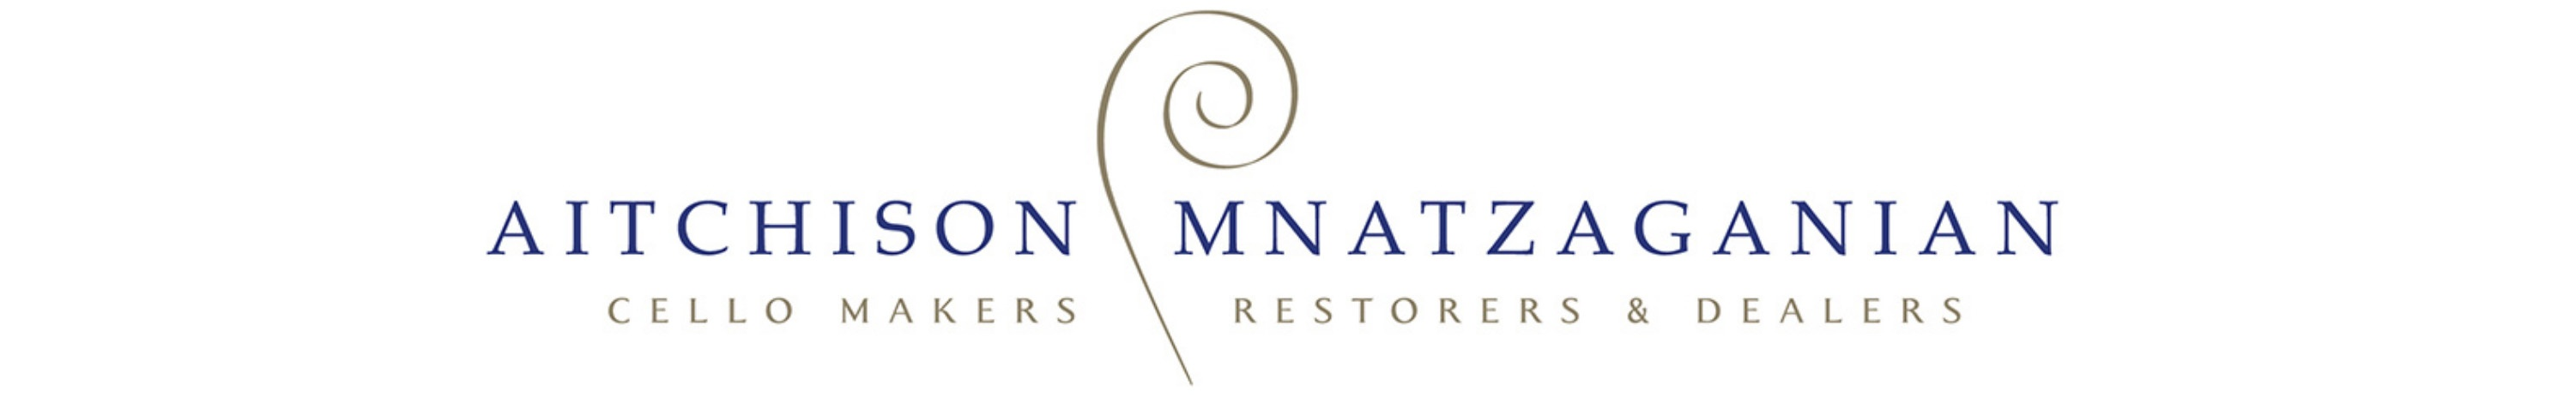 Aitchison & Mnatzaganian Cello Specialists Logo